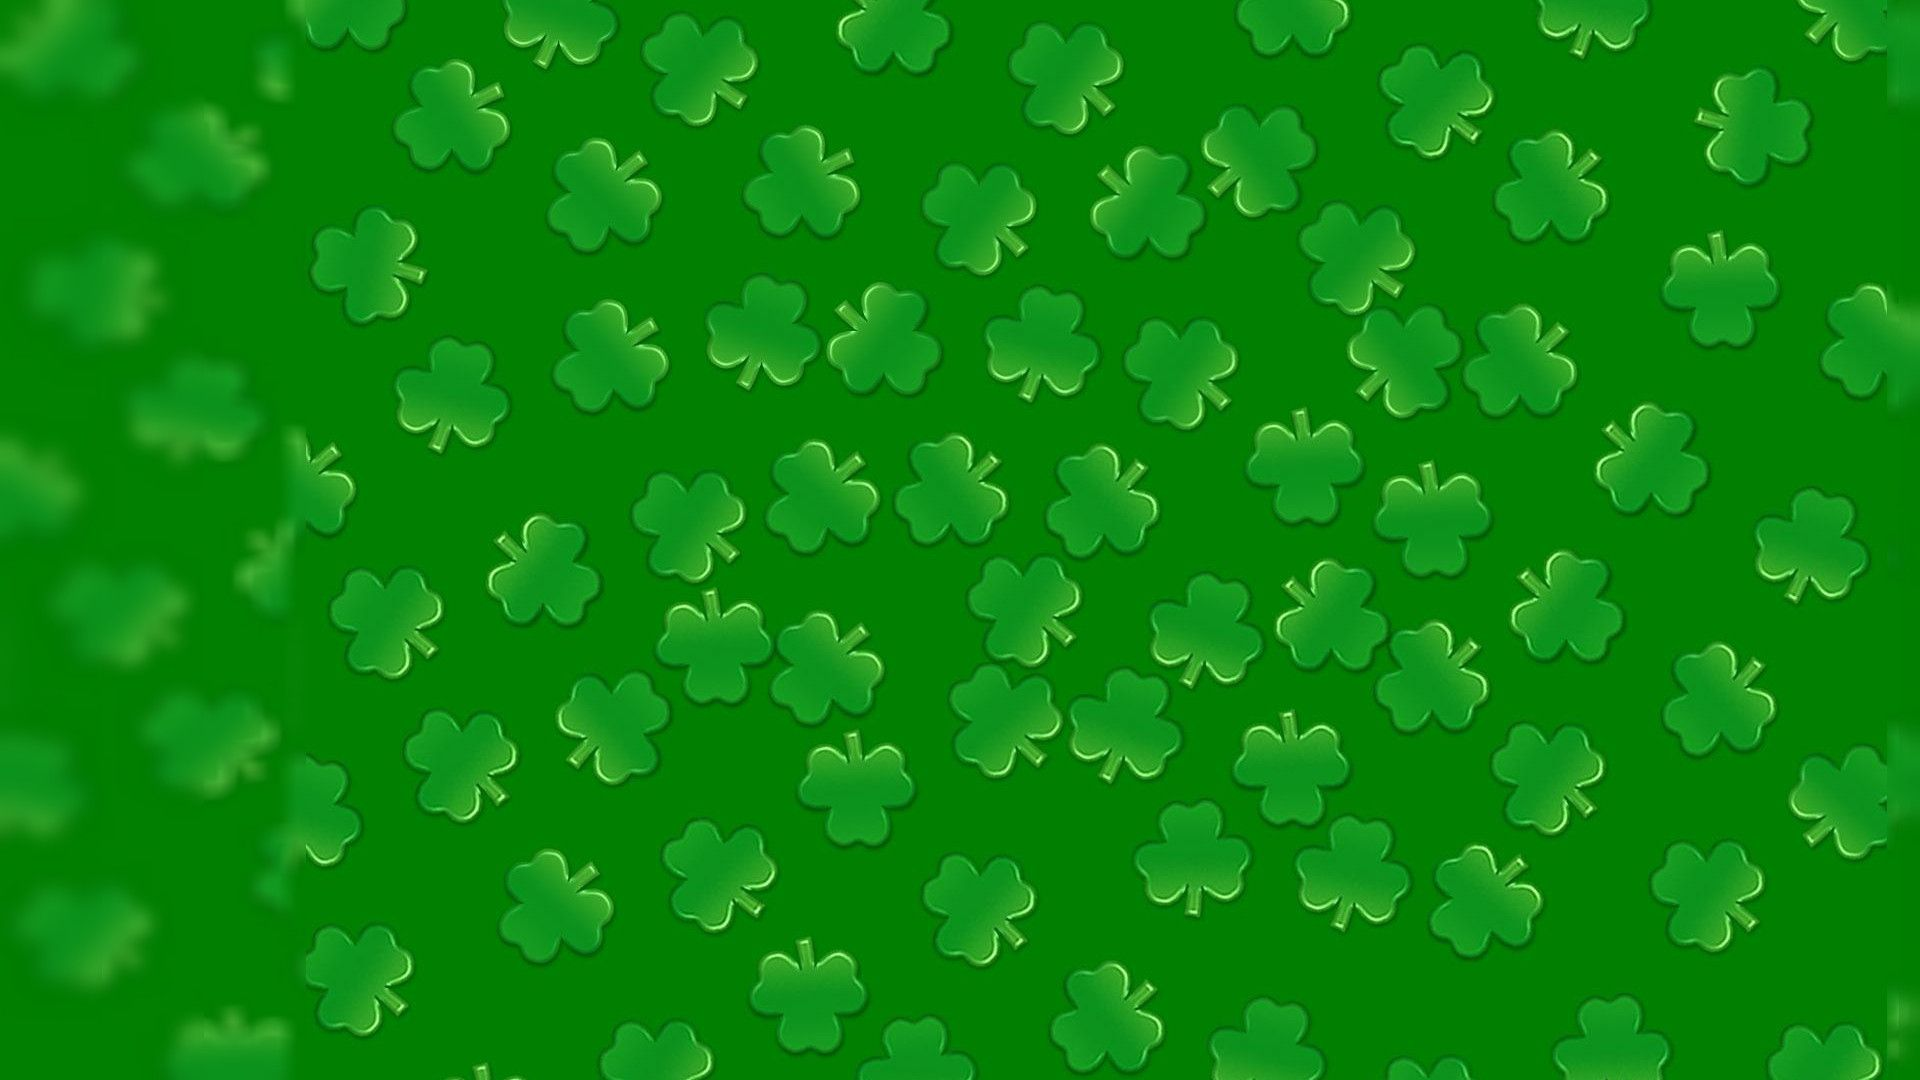 St Patrick S Day Hd Wallpapers Hd Wallpapers Inn